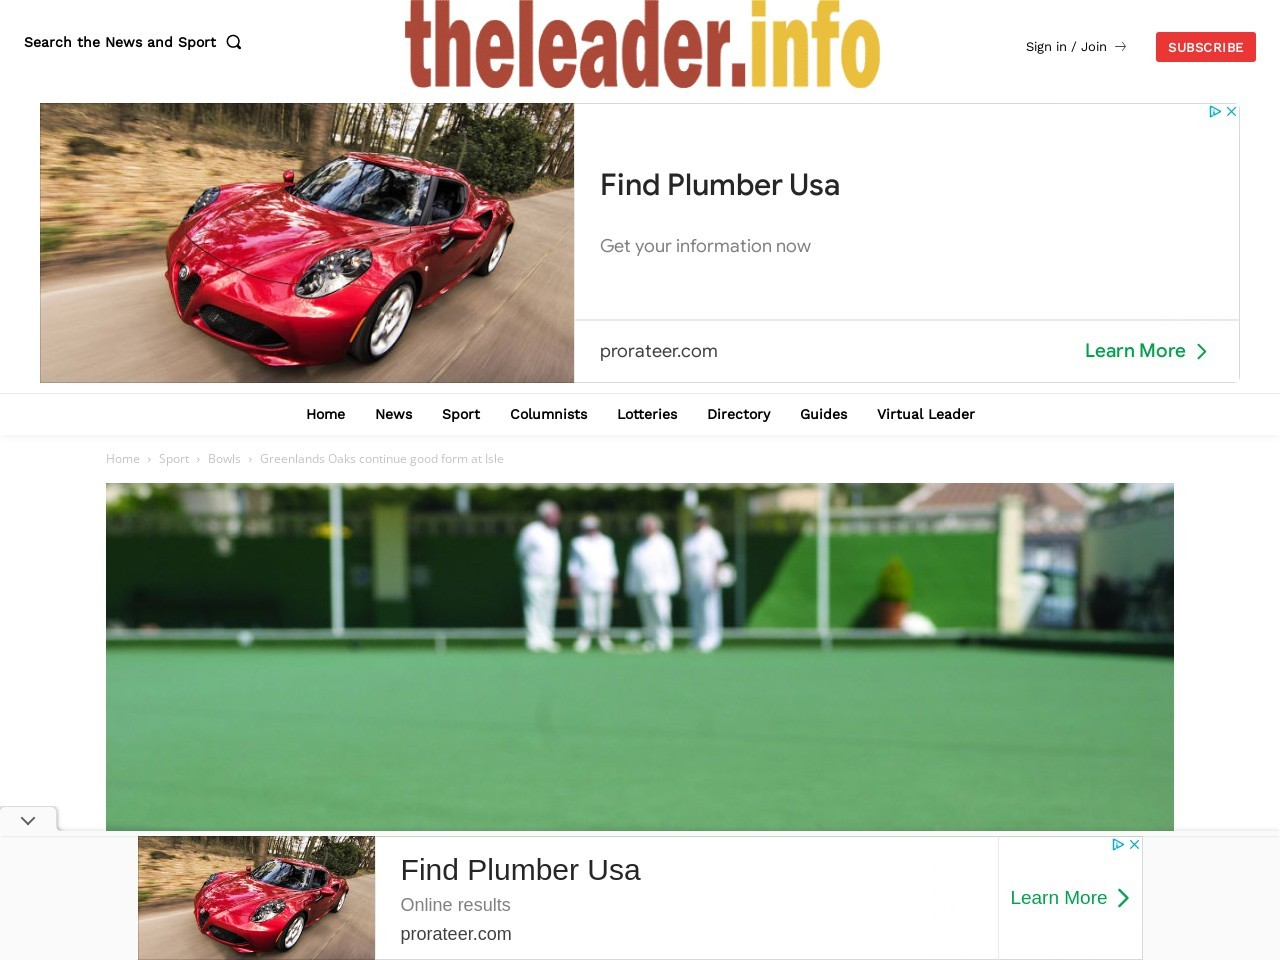 Greenlands Oaks continue good form at Isle